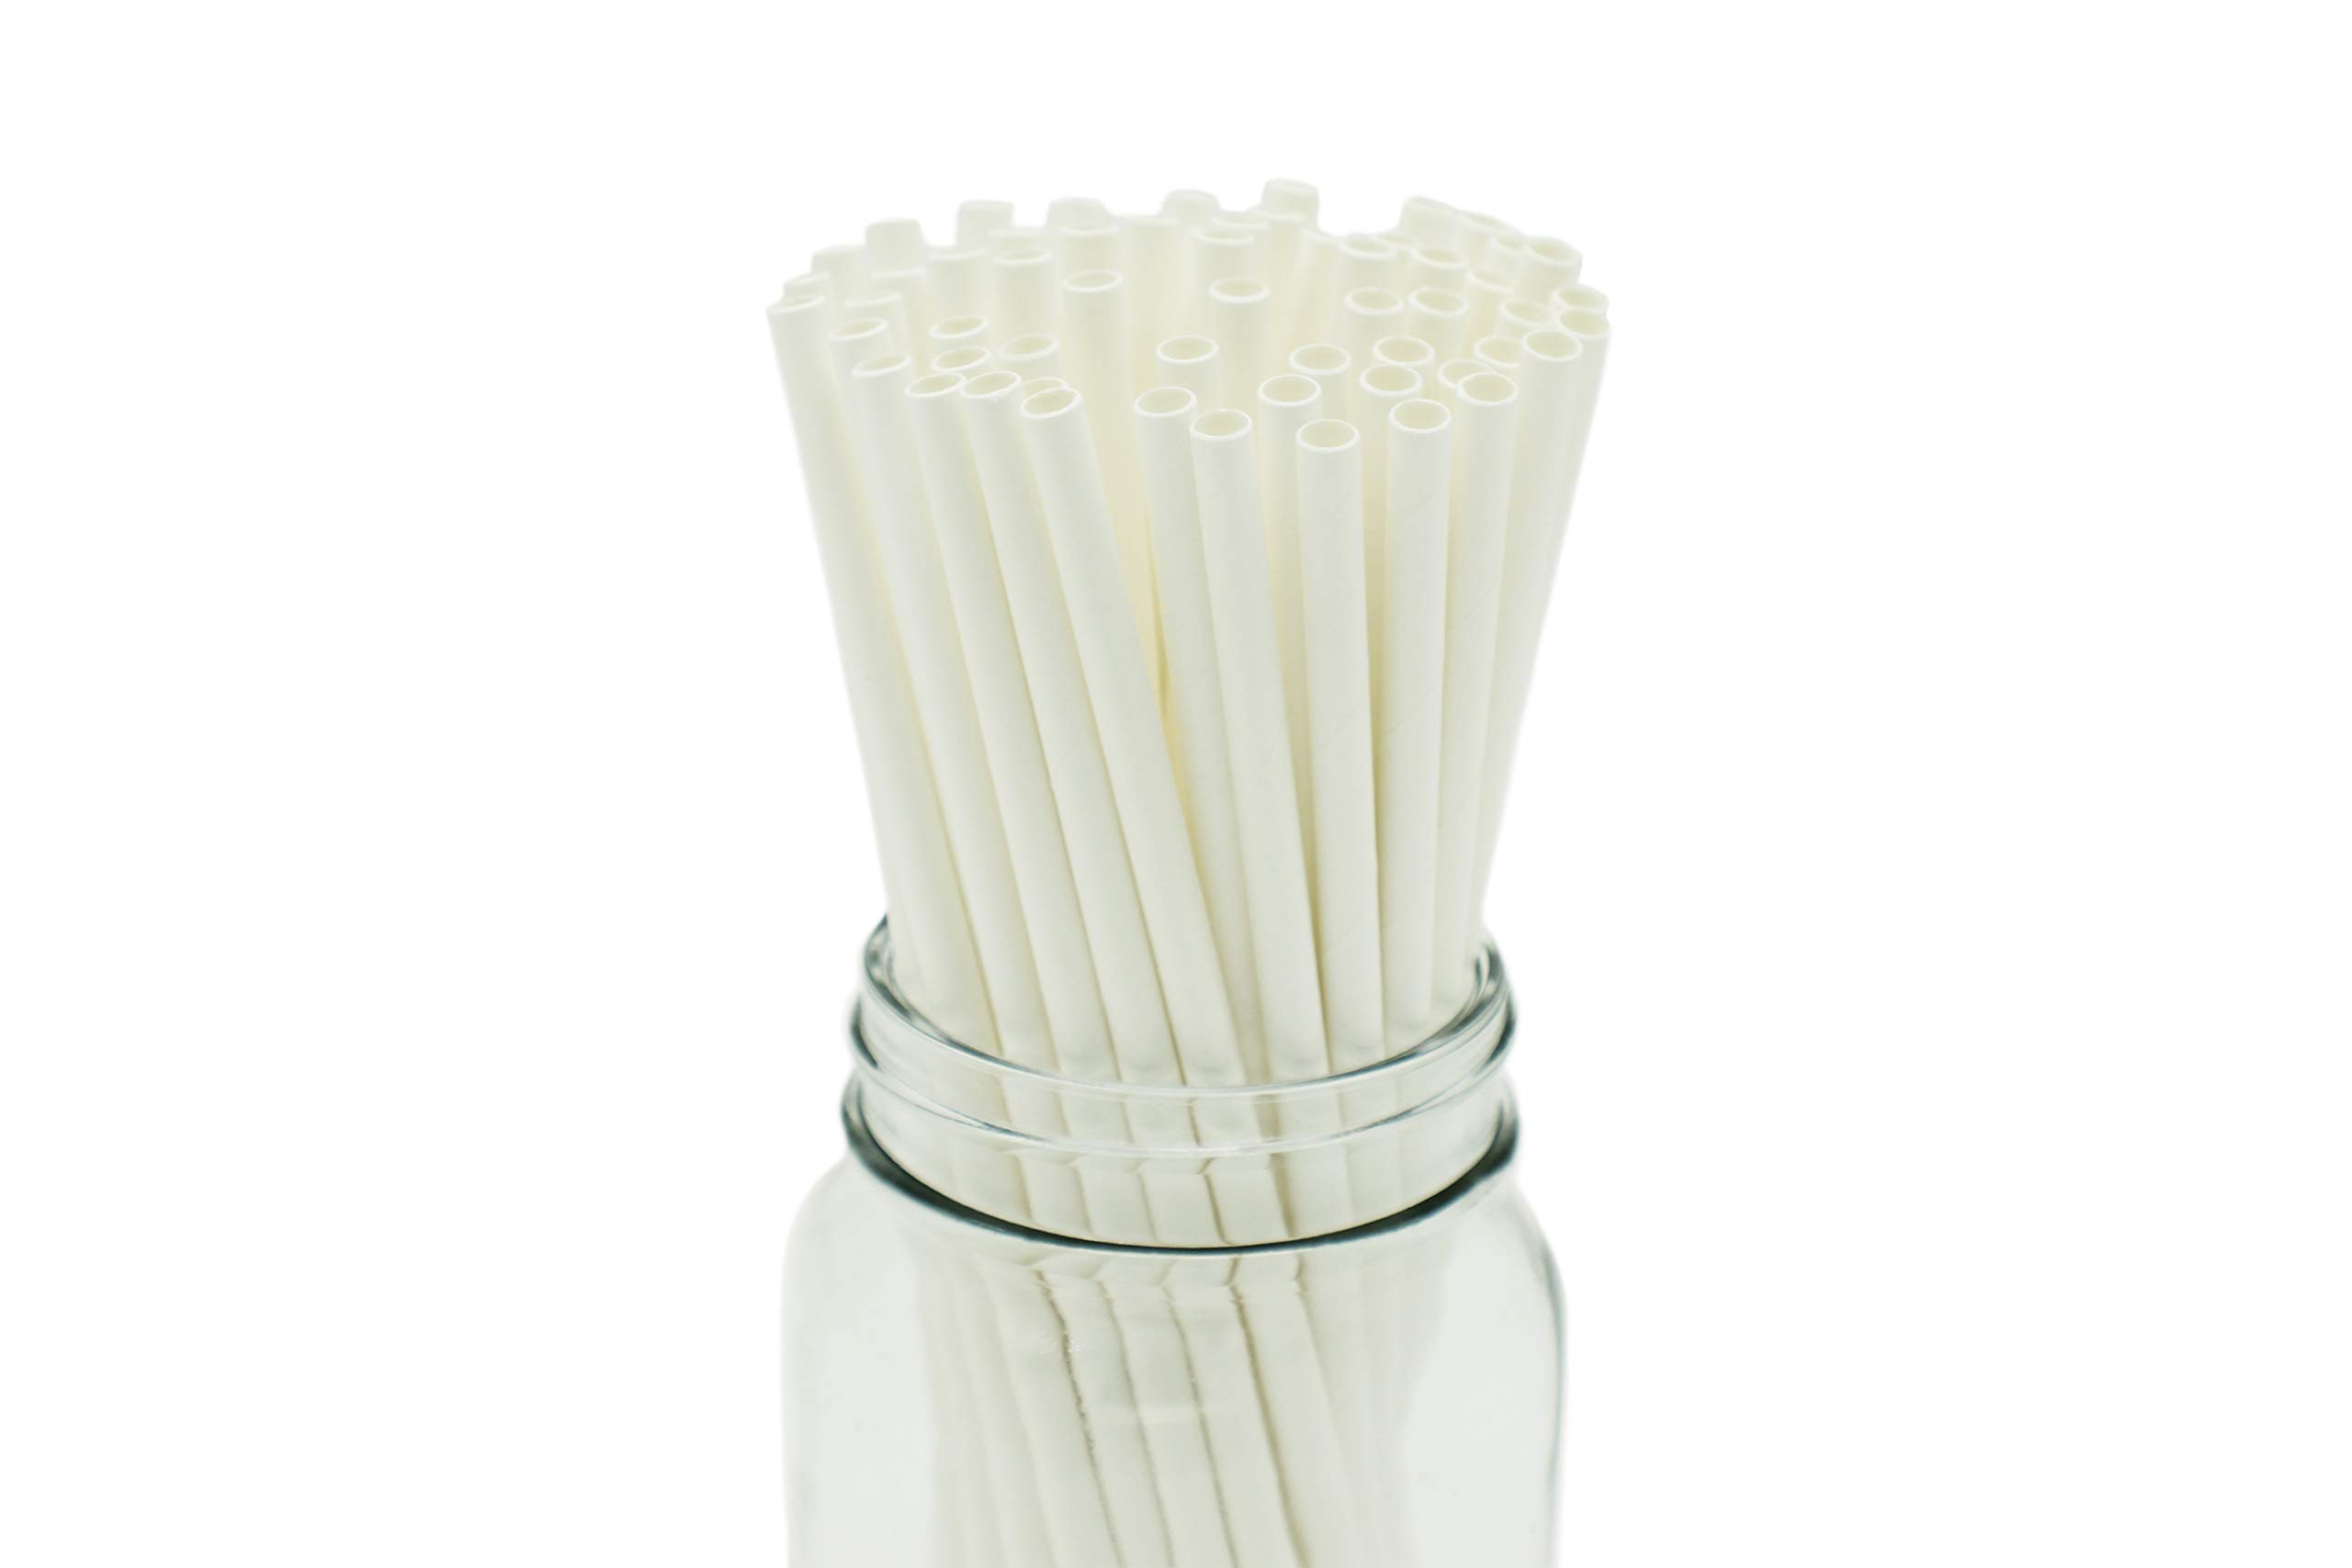 """[2400 COUNT] Standard 7.5"""" Disposable Drinking Paper Straws Sturdy Natural White Smoothie Milkshake Milk Tea Restaurant Party (7.5 Inches Long, 6 Millimeters Thick, Dye Free Products, Treestraw"""